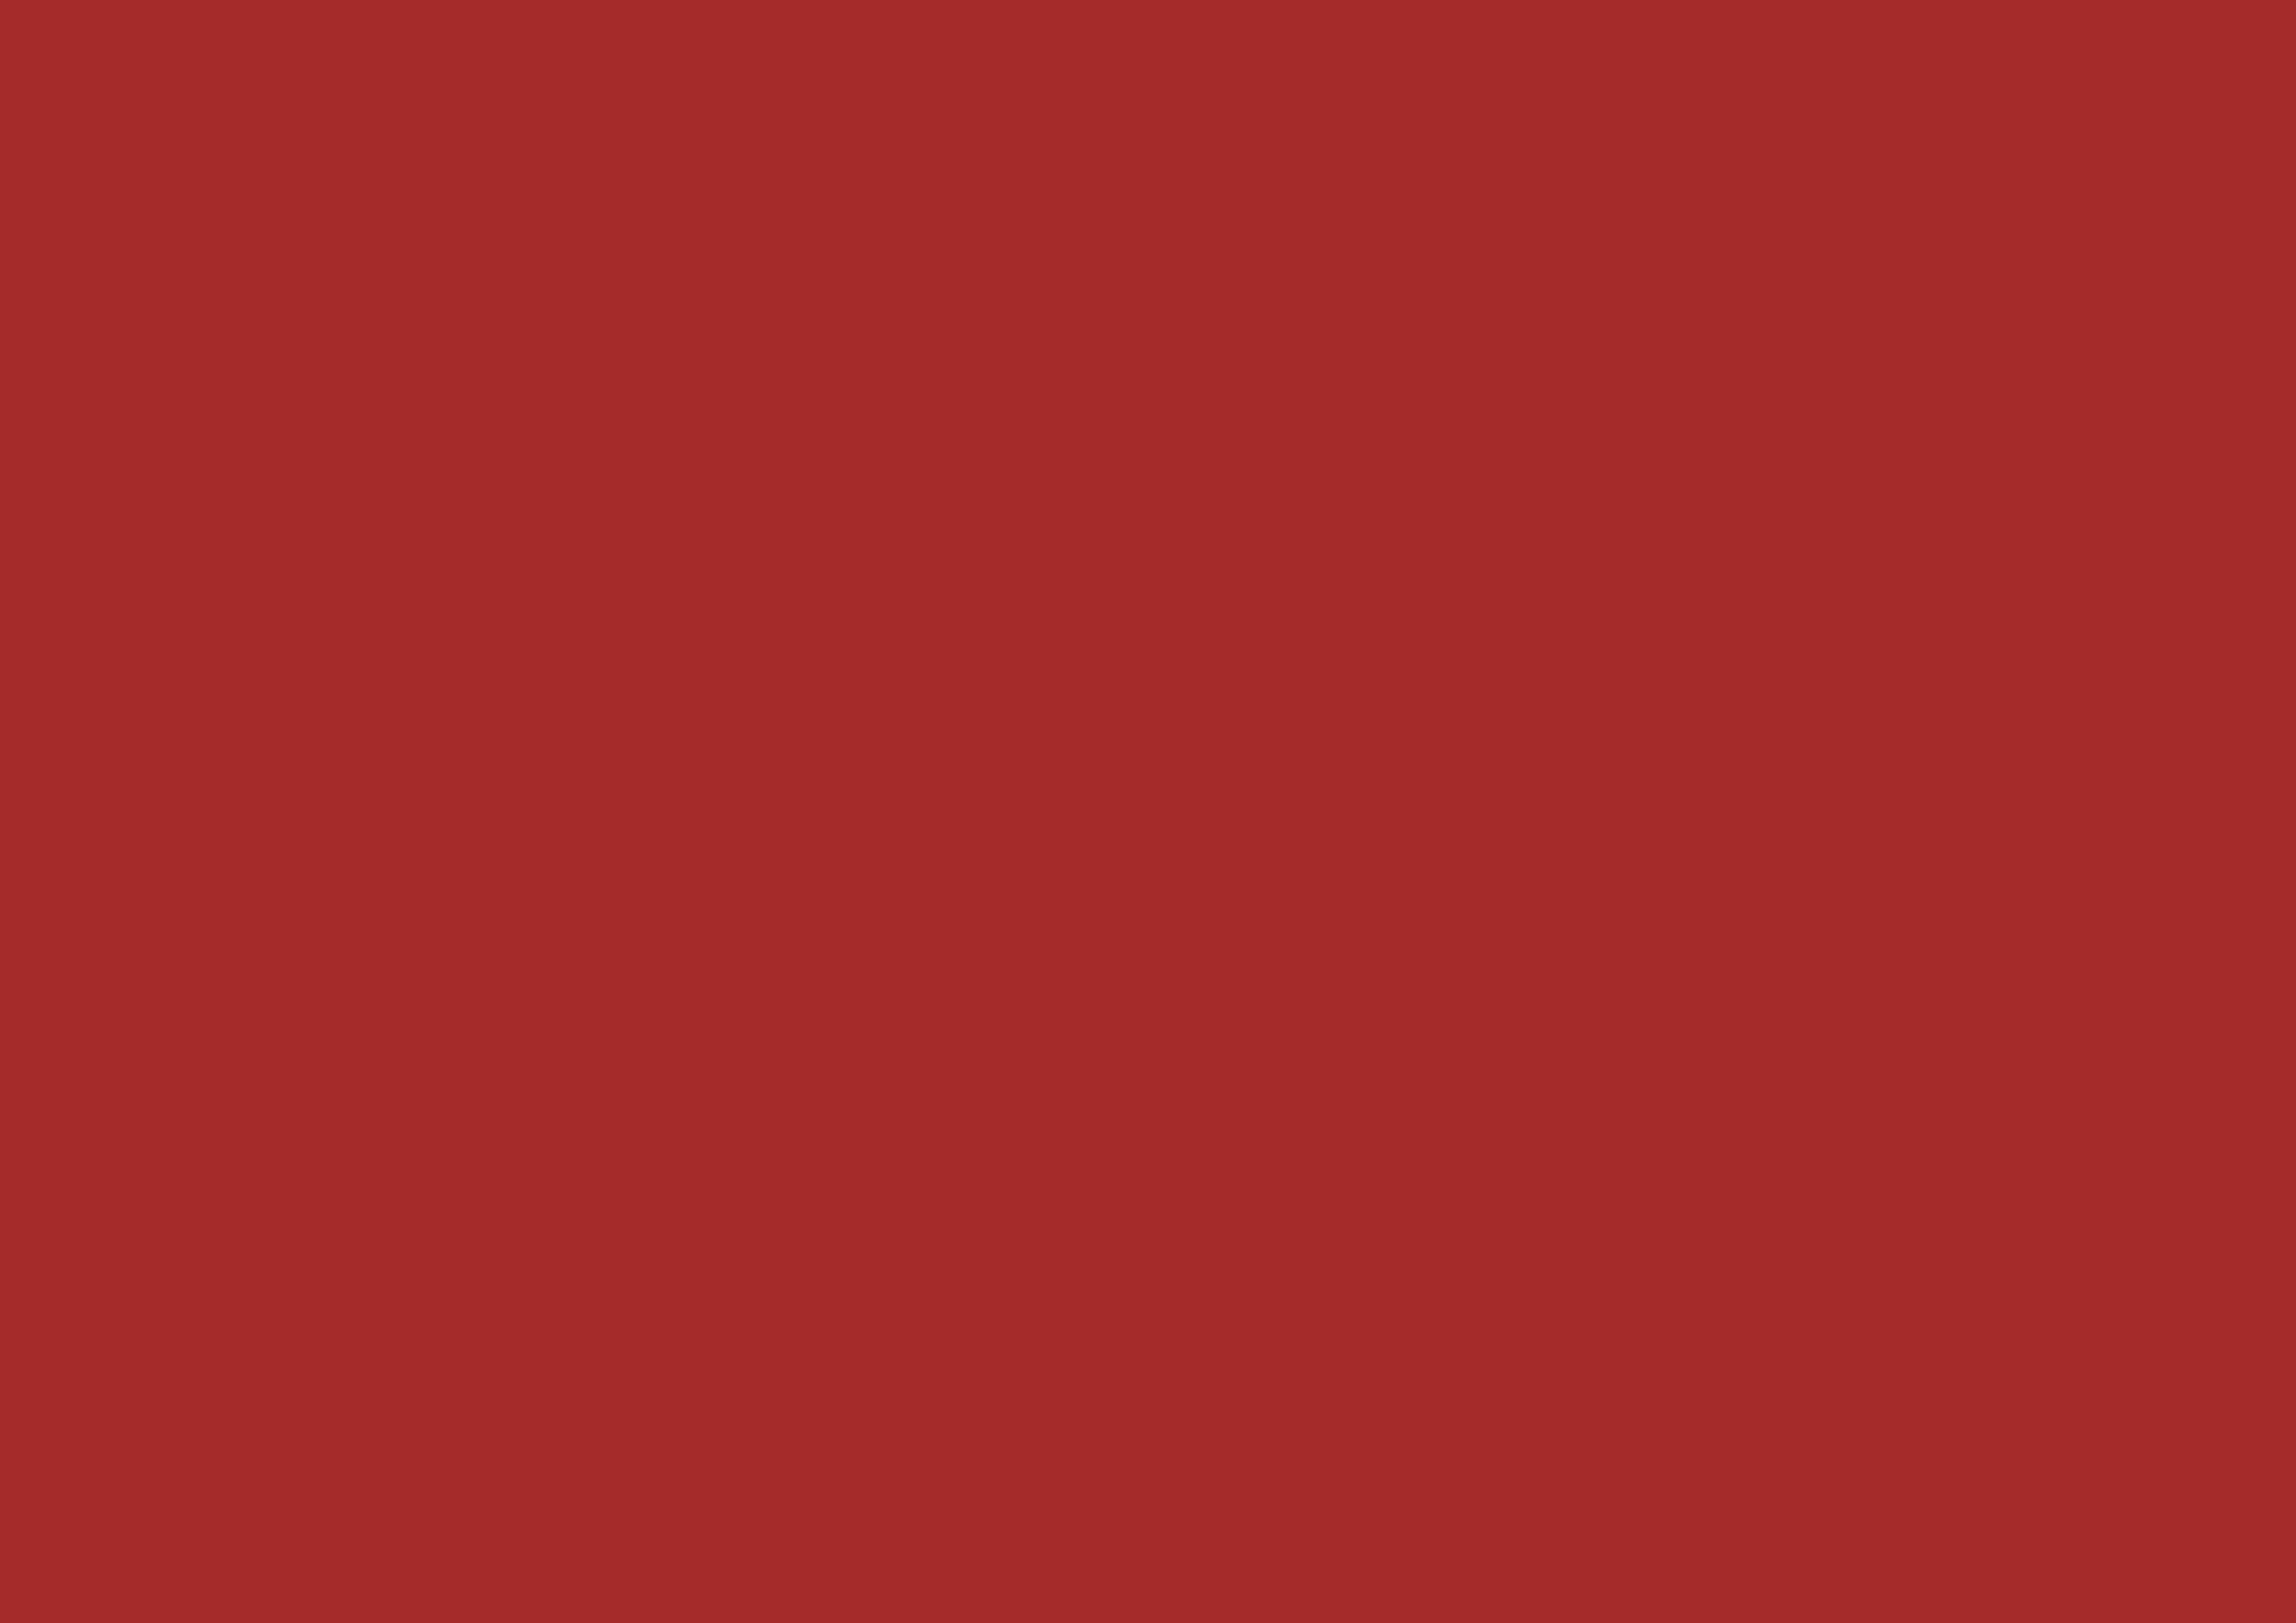 3508x2480 Red-brown Solid Color Background